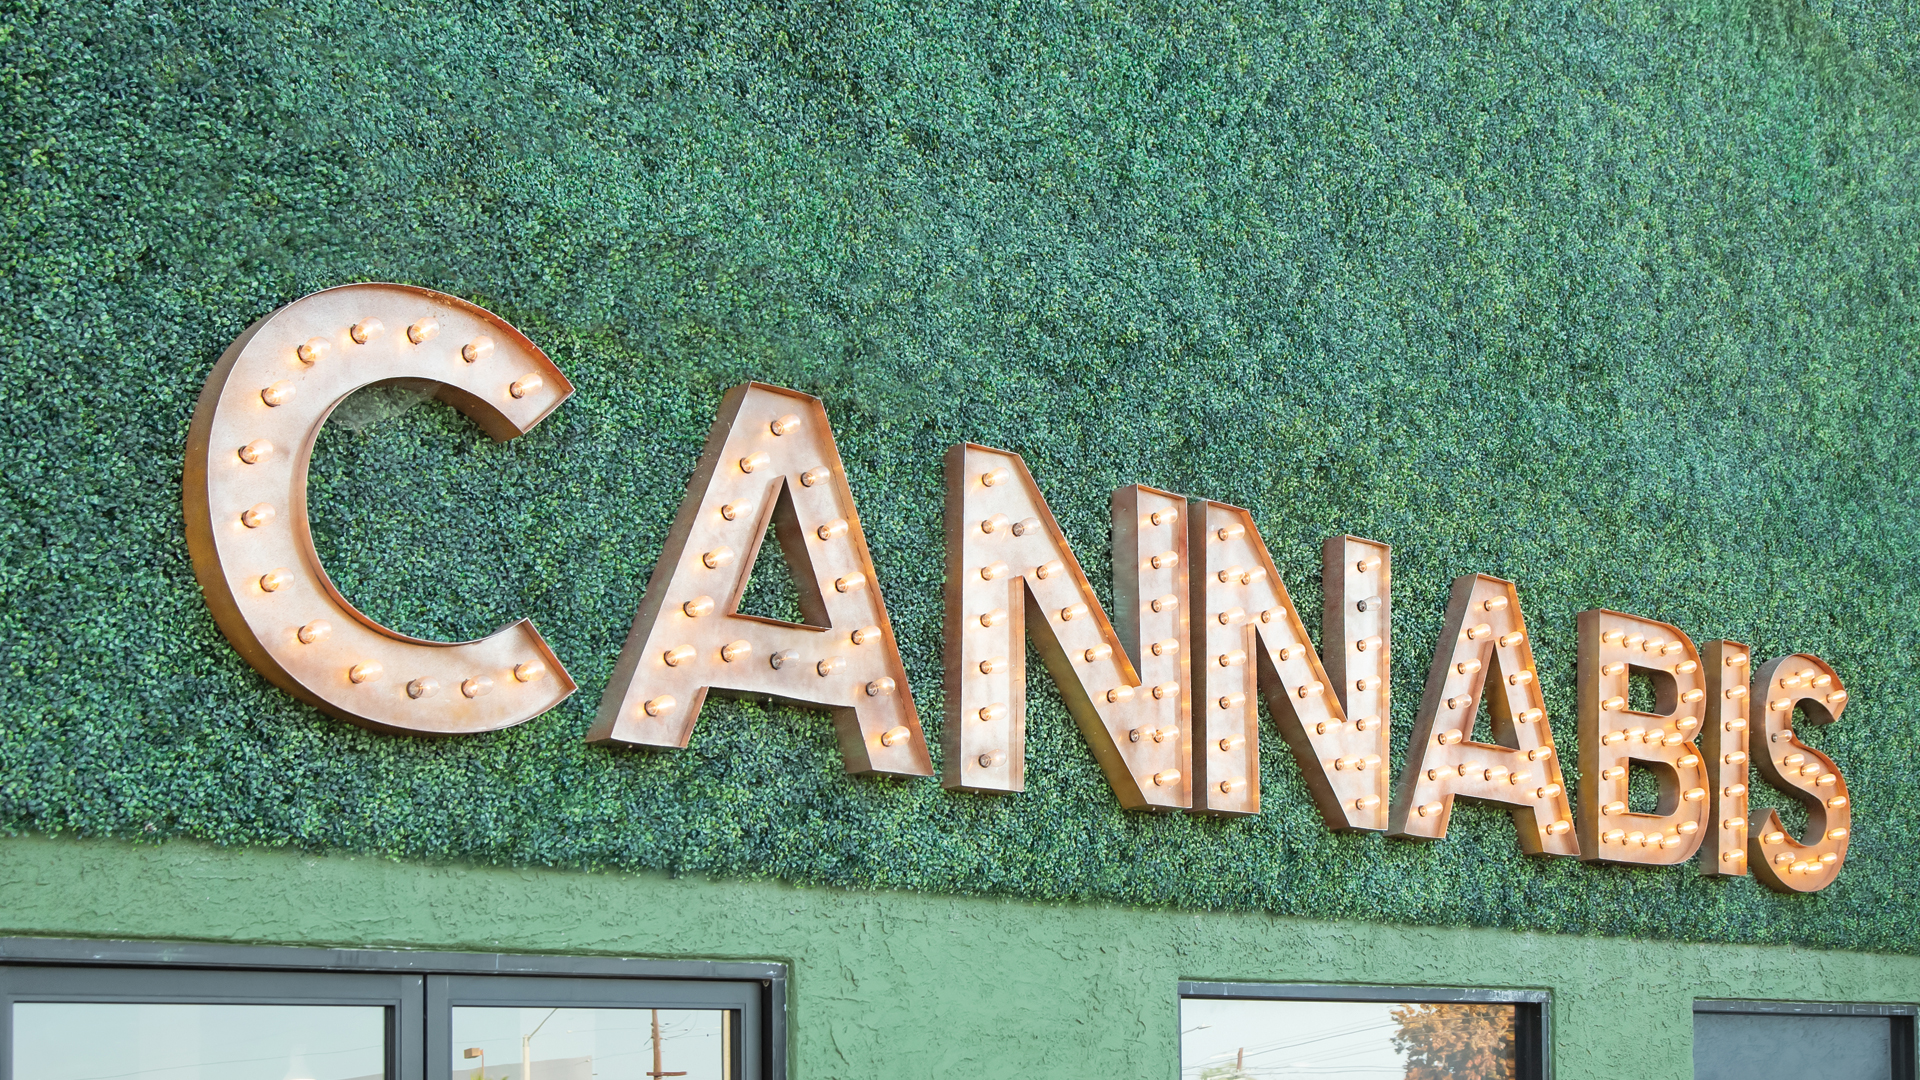 Ontario doubles Cannabis Retail Store Authorizations from 40 to 80 per Month